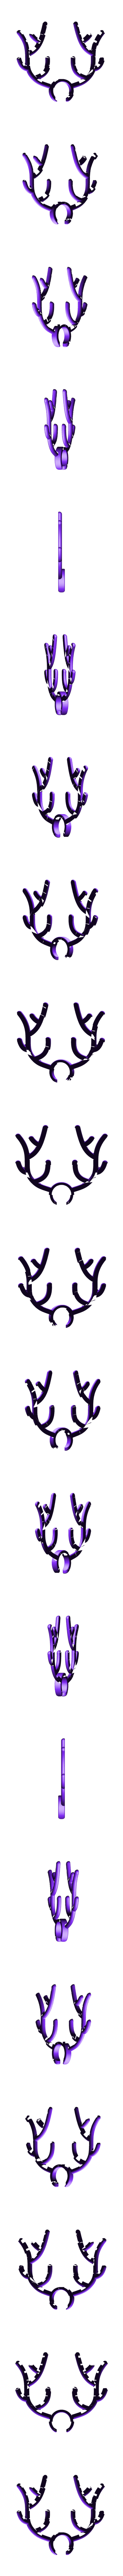 Antlers for Thin Candy Canes.stl Download free STL file Candy Cane Reindeer Antlers • Design to 3D print, Hom3d